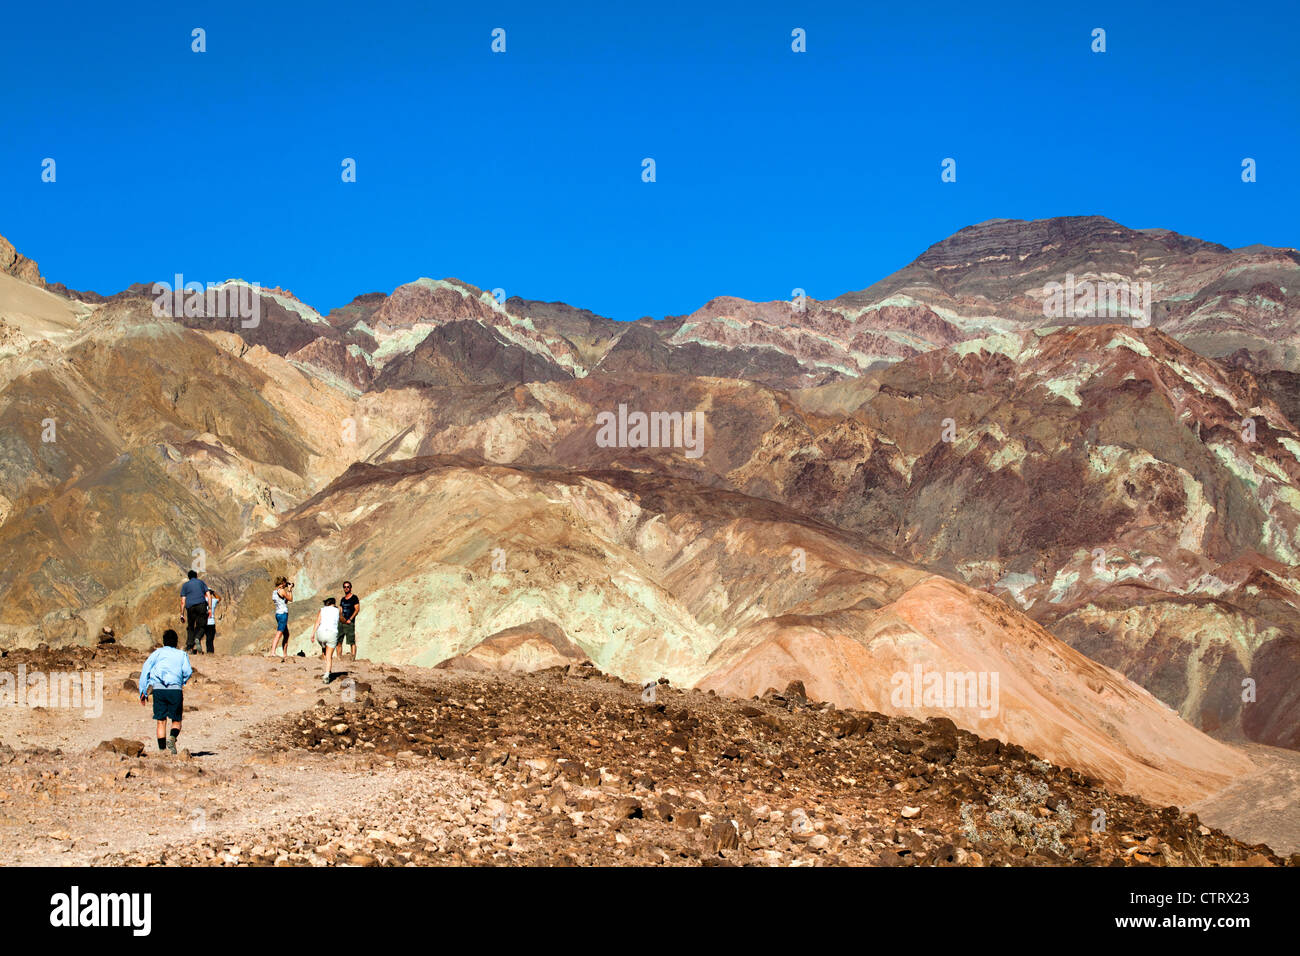 Artists Palette, Death Valley, California, USA, - Stock Image